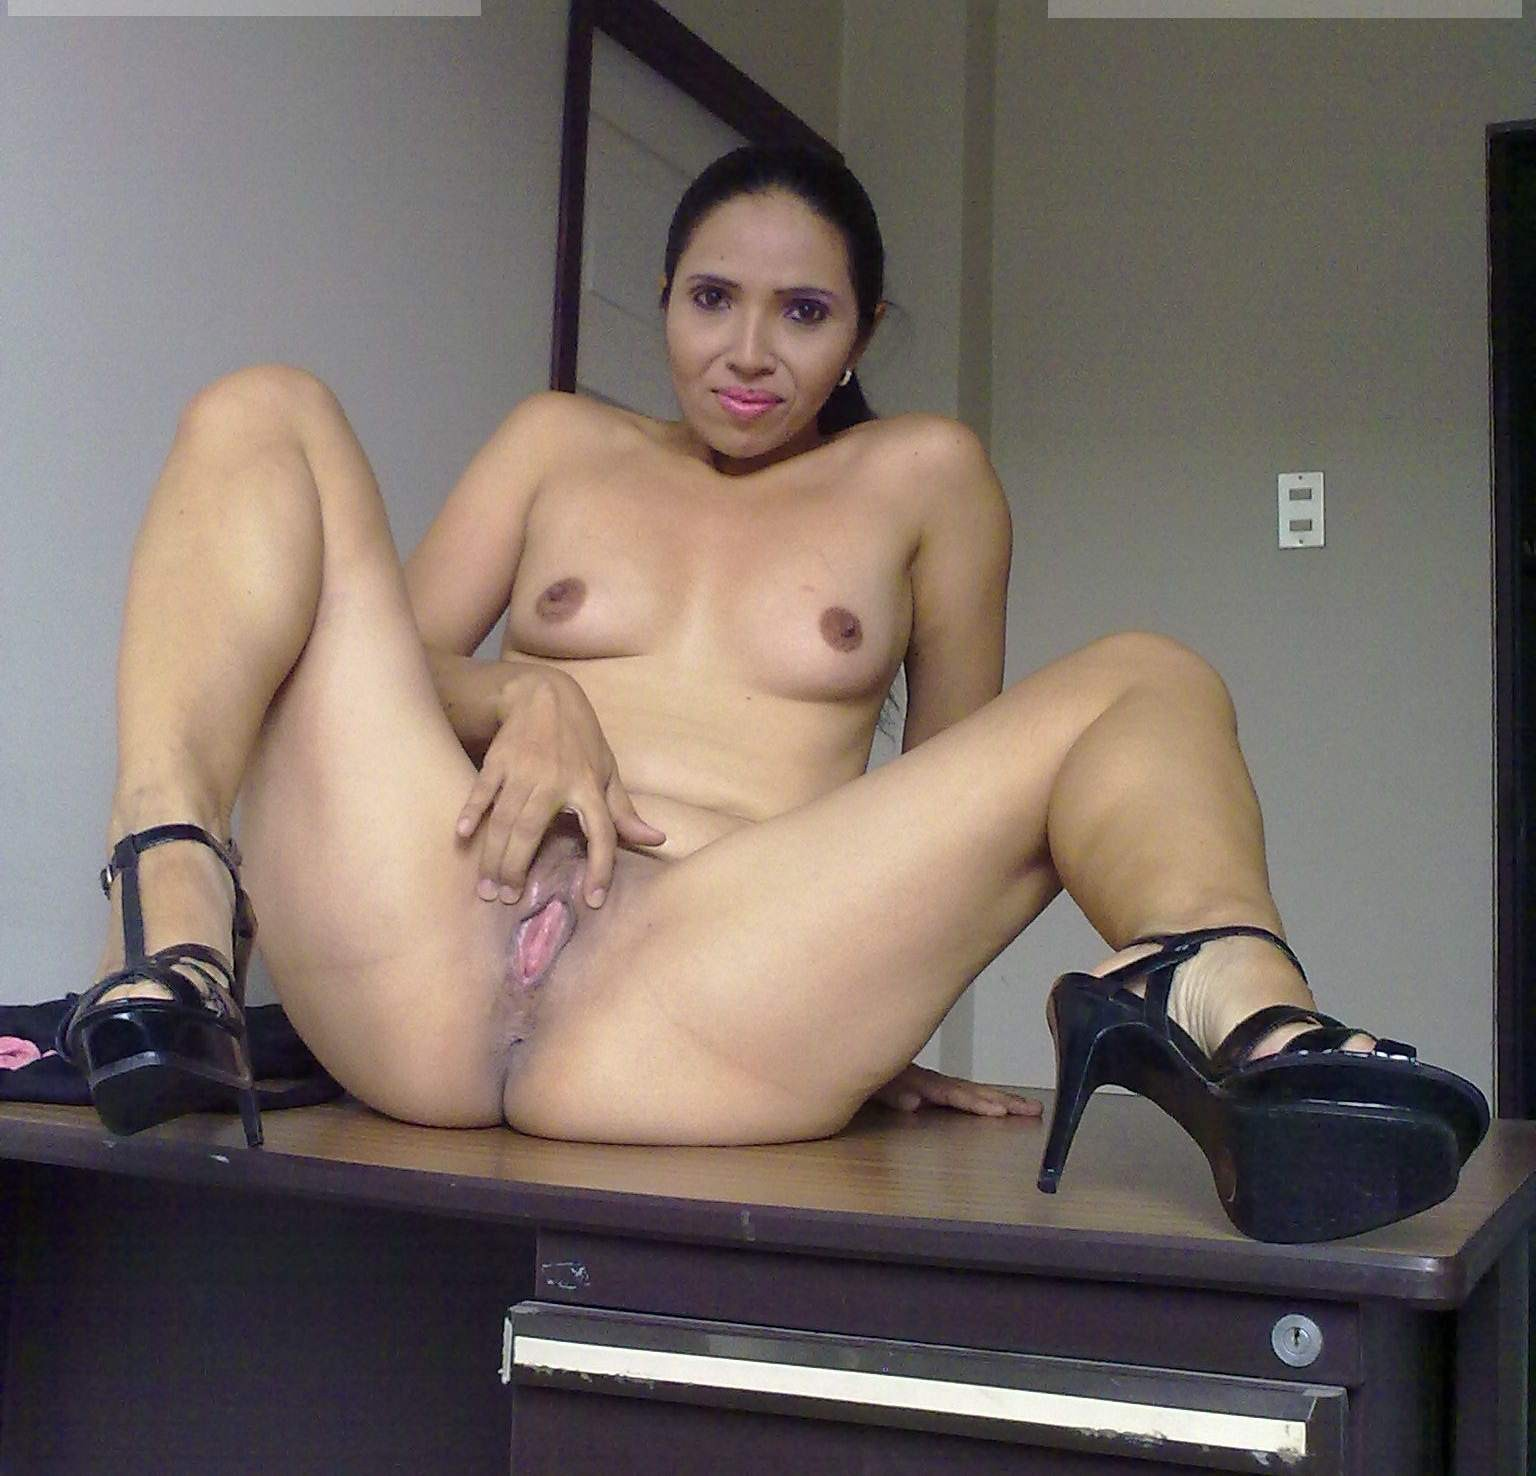 Nice message amateur mexican girl fucking final